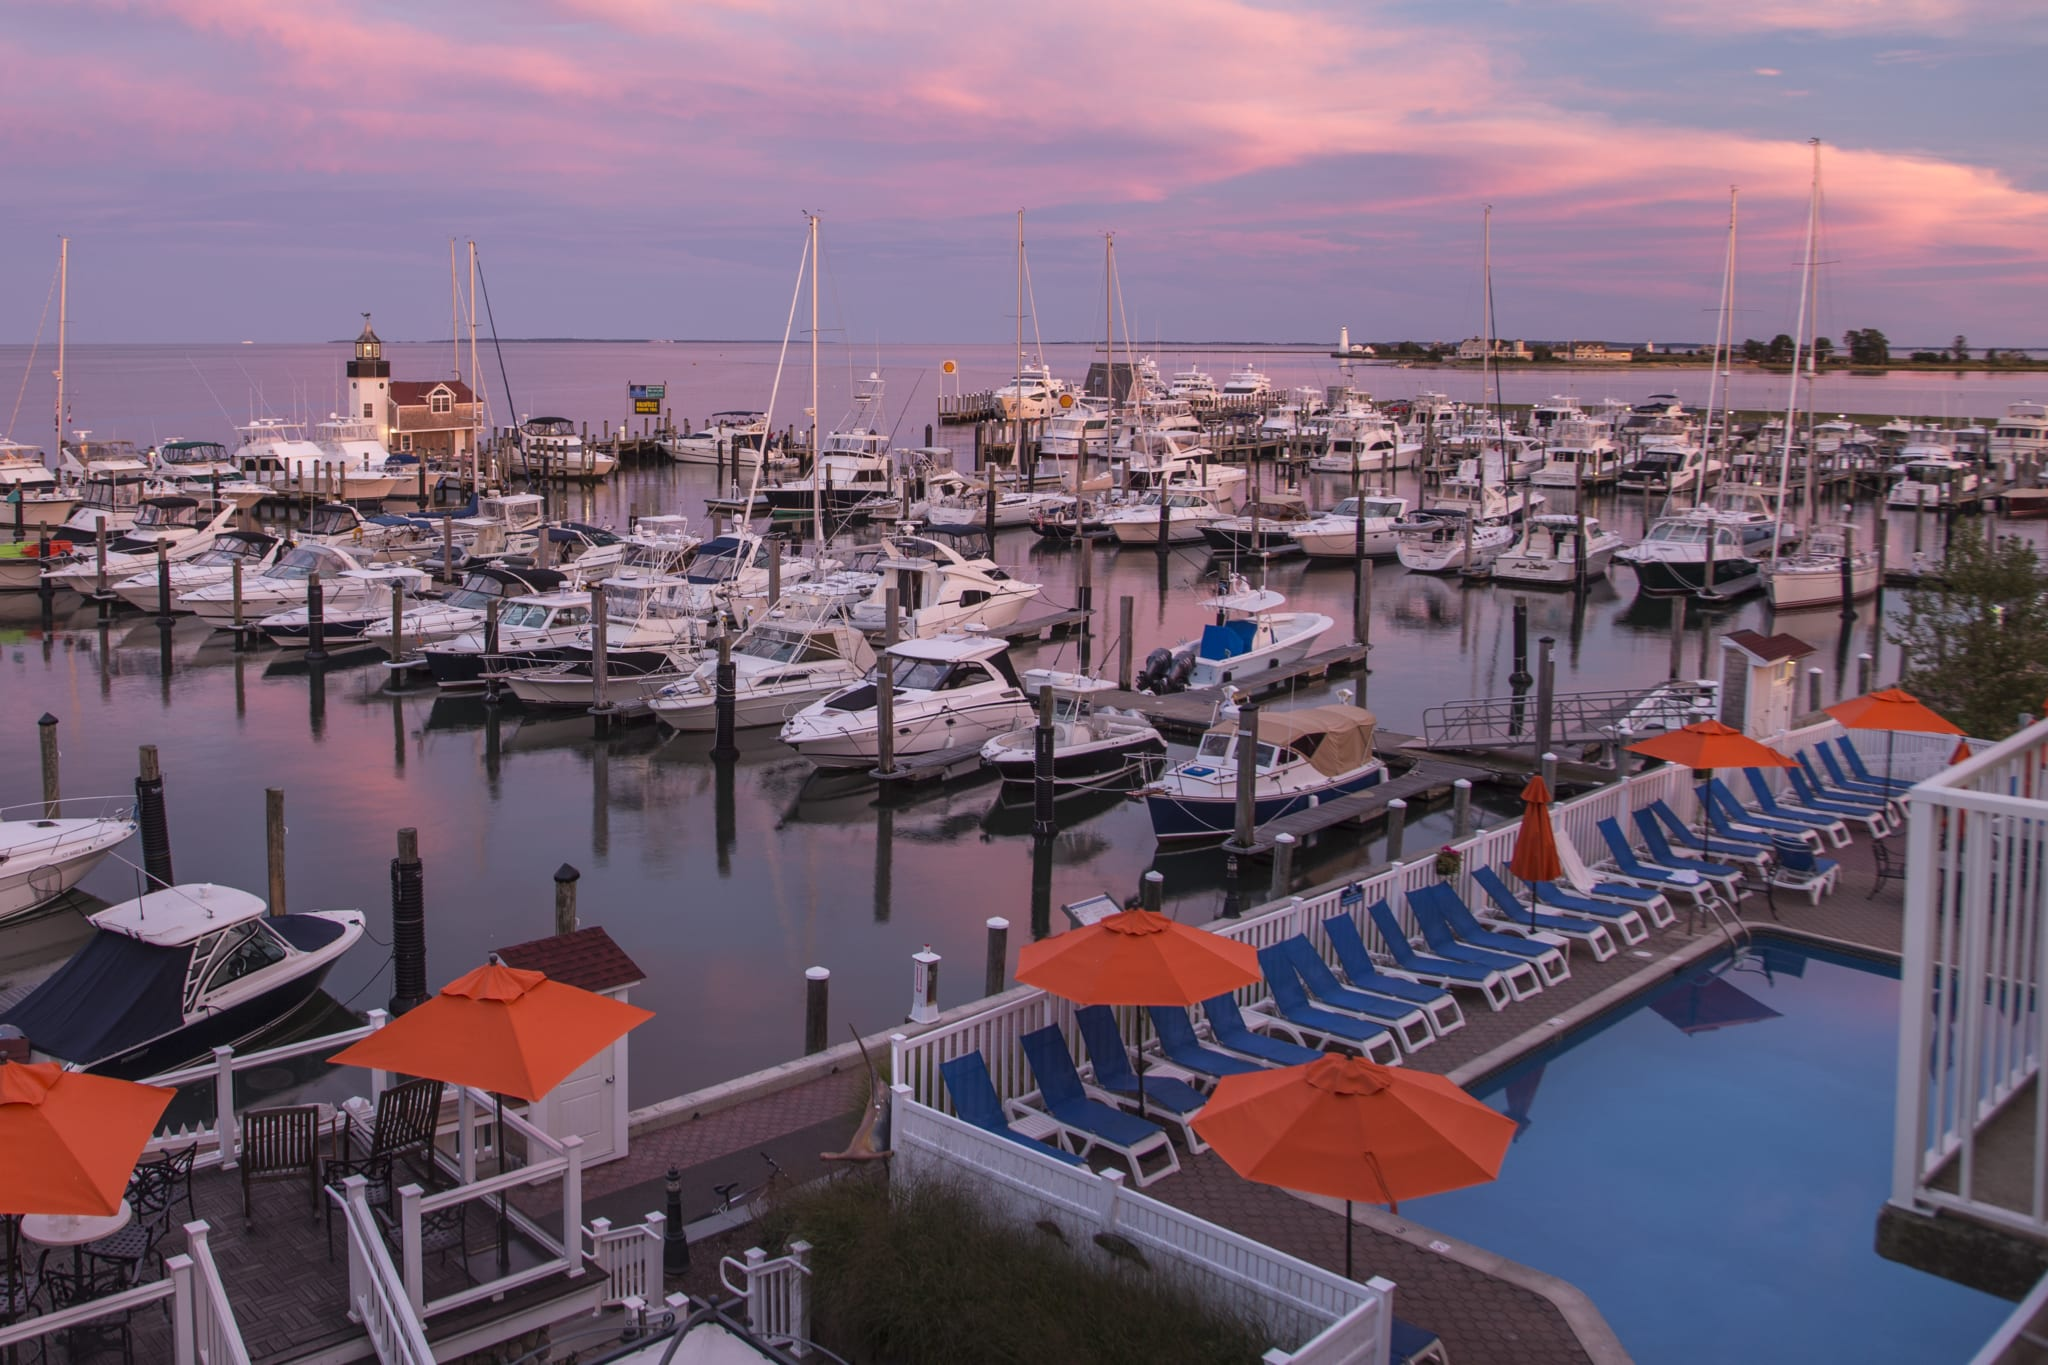 View from a balcony overlooking a marina at sunset.